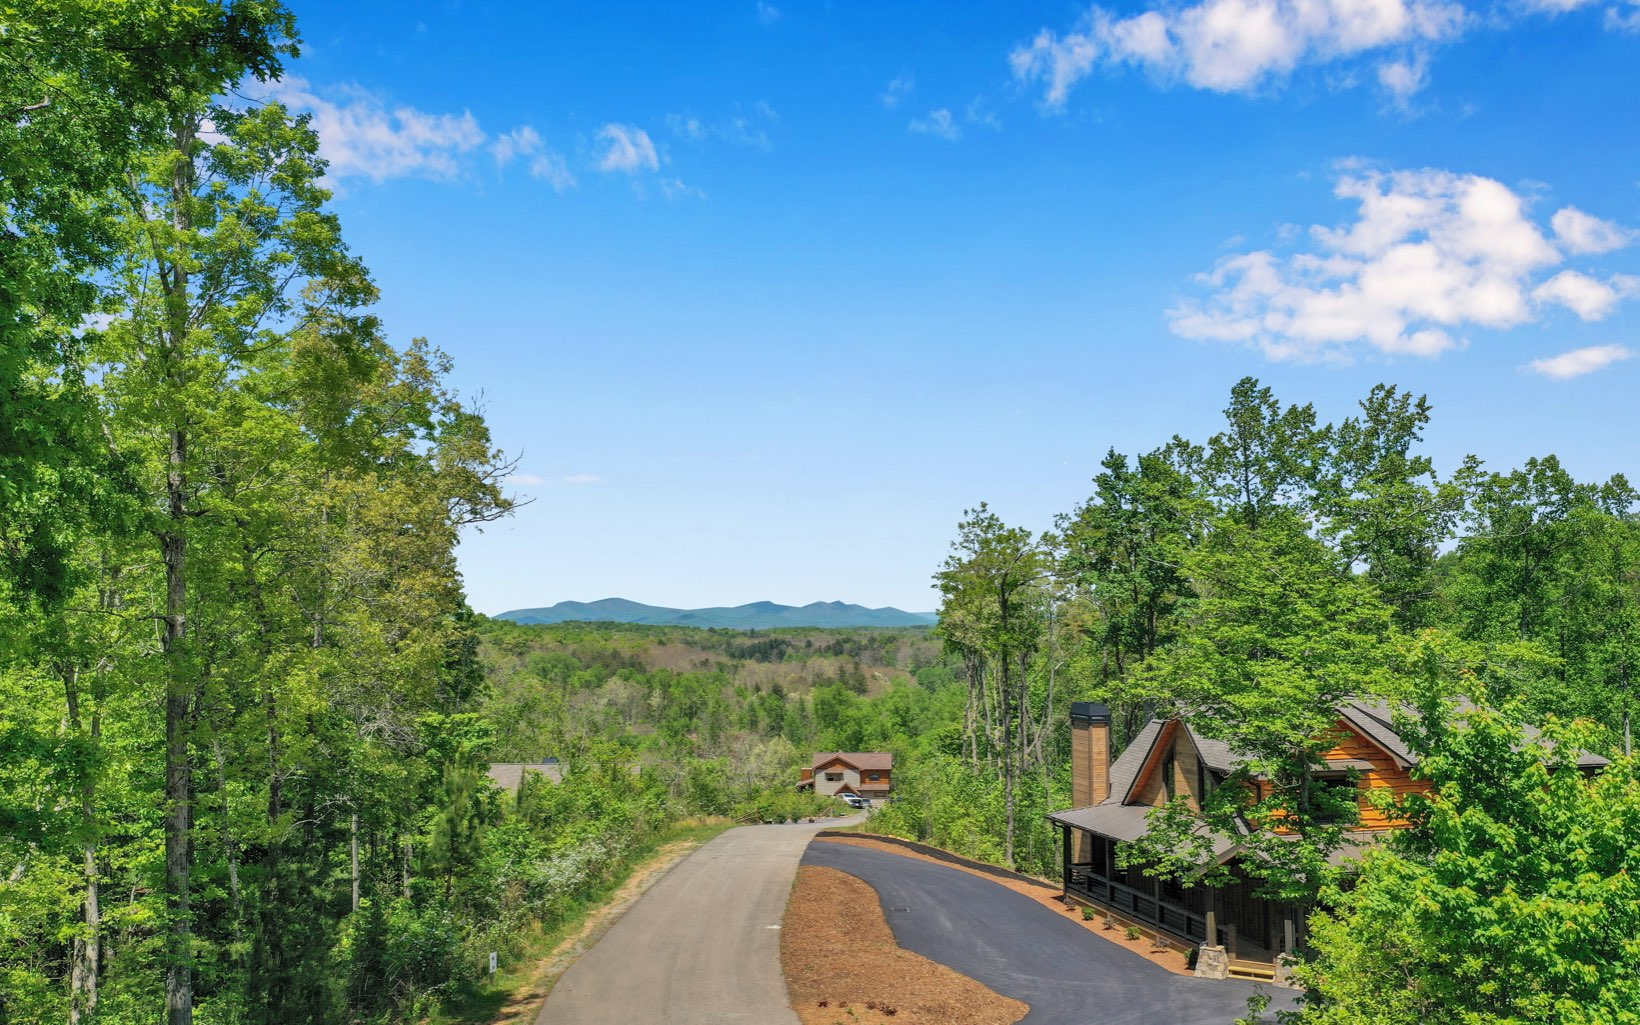 LONG RANGE MOUNTAIN VIEWS-PRESTIGIOUS STAUROLITE MOUNTAIN COMMUNITY. PREMIUM 2.39 ACRE LOT. Nice Level spot to build with specular YEAR ROUND BLUE RIDGE mountain views. This fully gated community is an upscale subdivision featuring paved roads with professional landscaping, waterfall, large party pavilion with rock fireplace alongside the small creek & stocked pond. You can't beat this location 5 minutes from downtown. -City Water-Easy Access 515